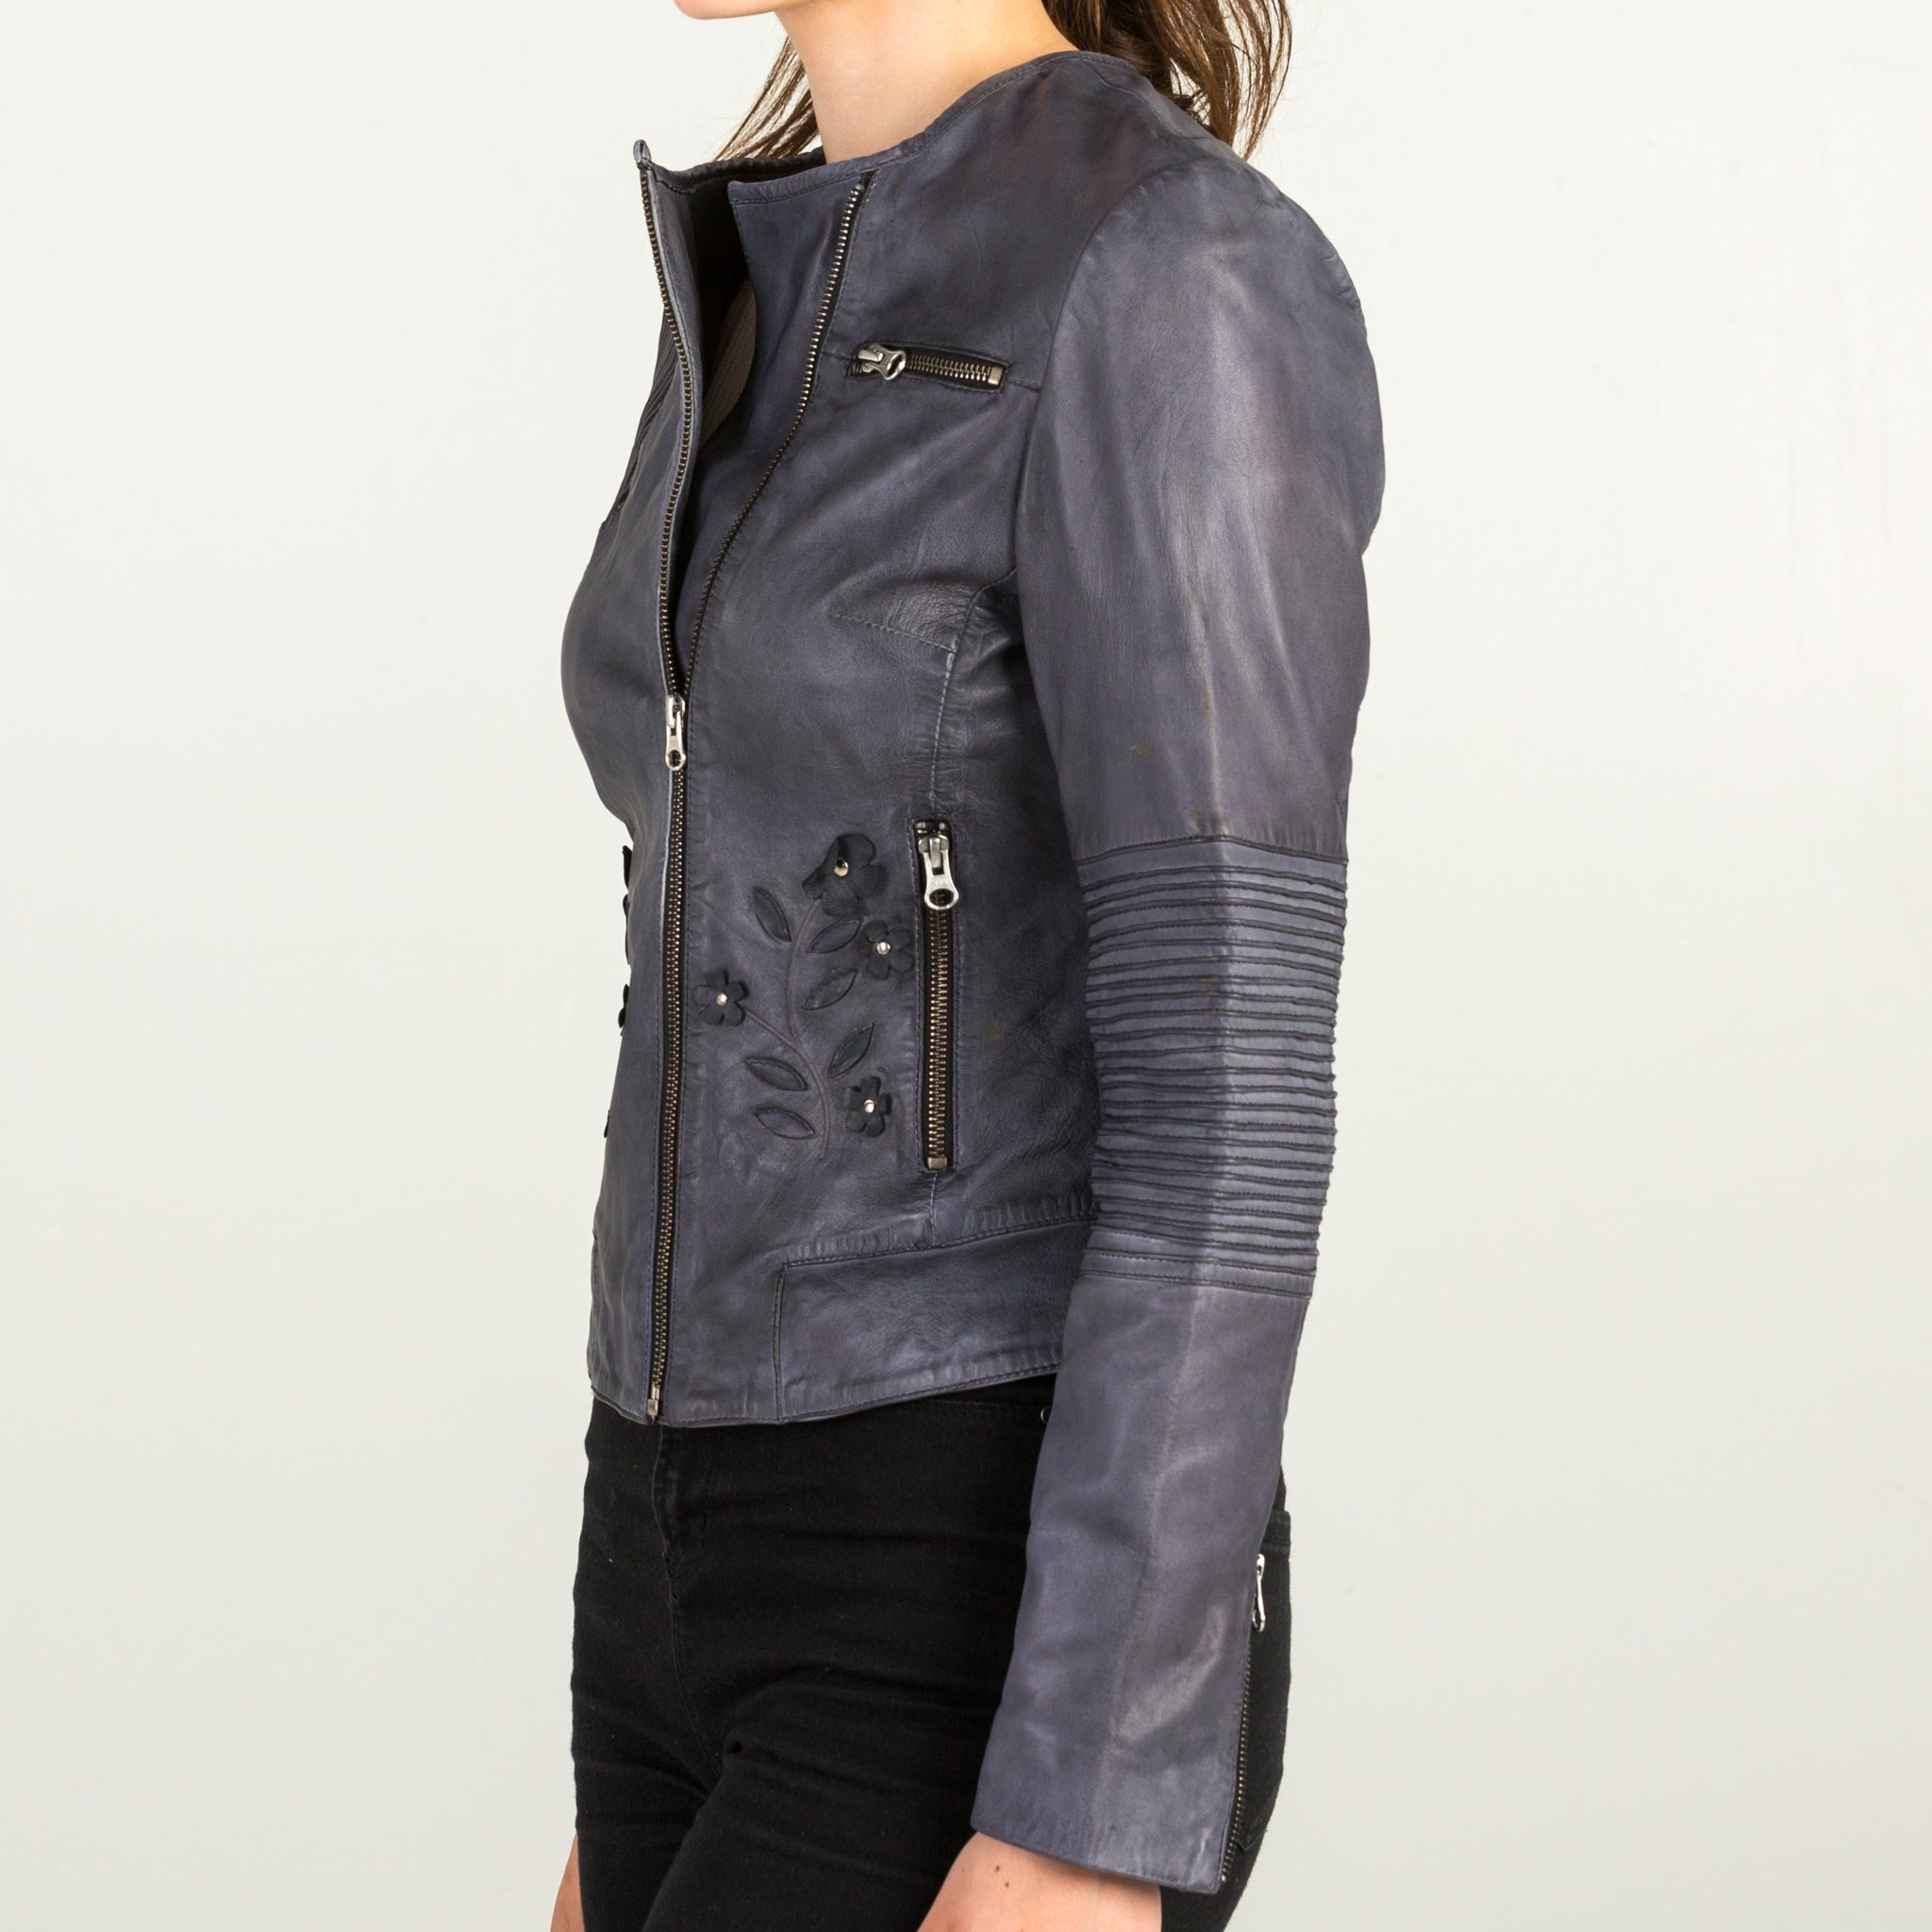 Dull Black Leather Jacket